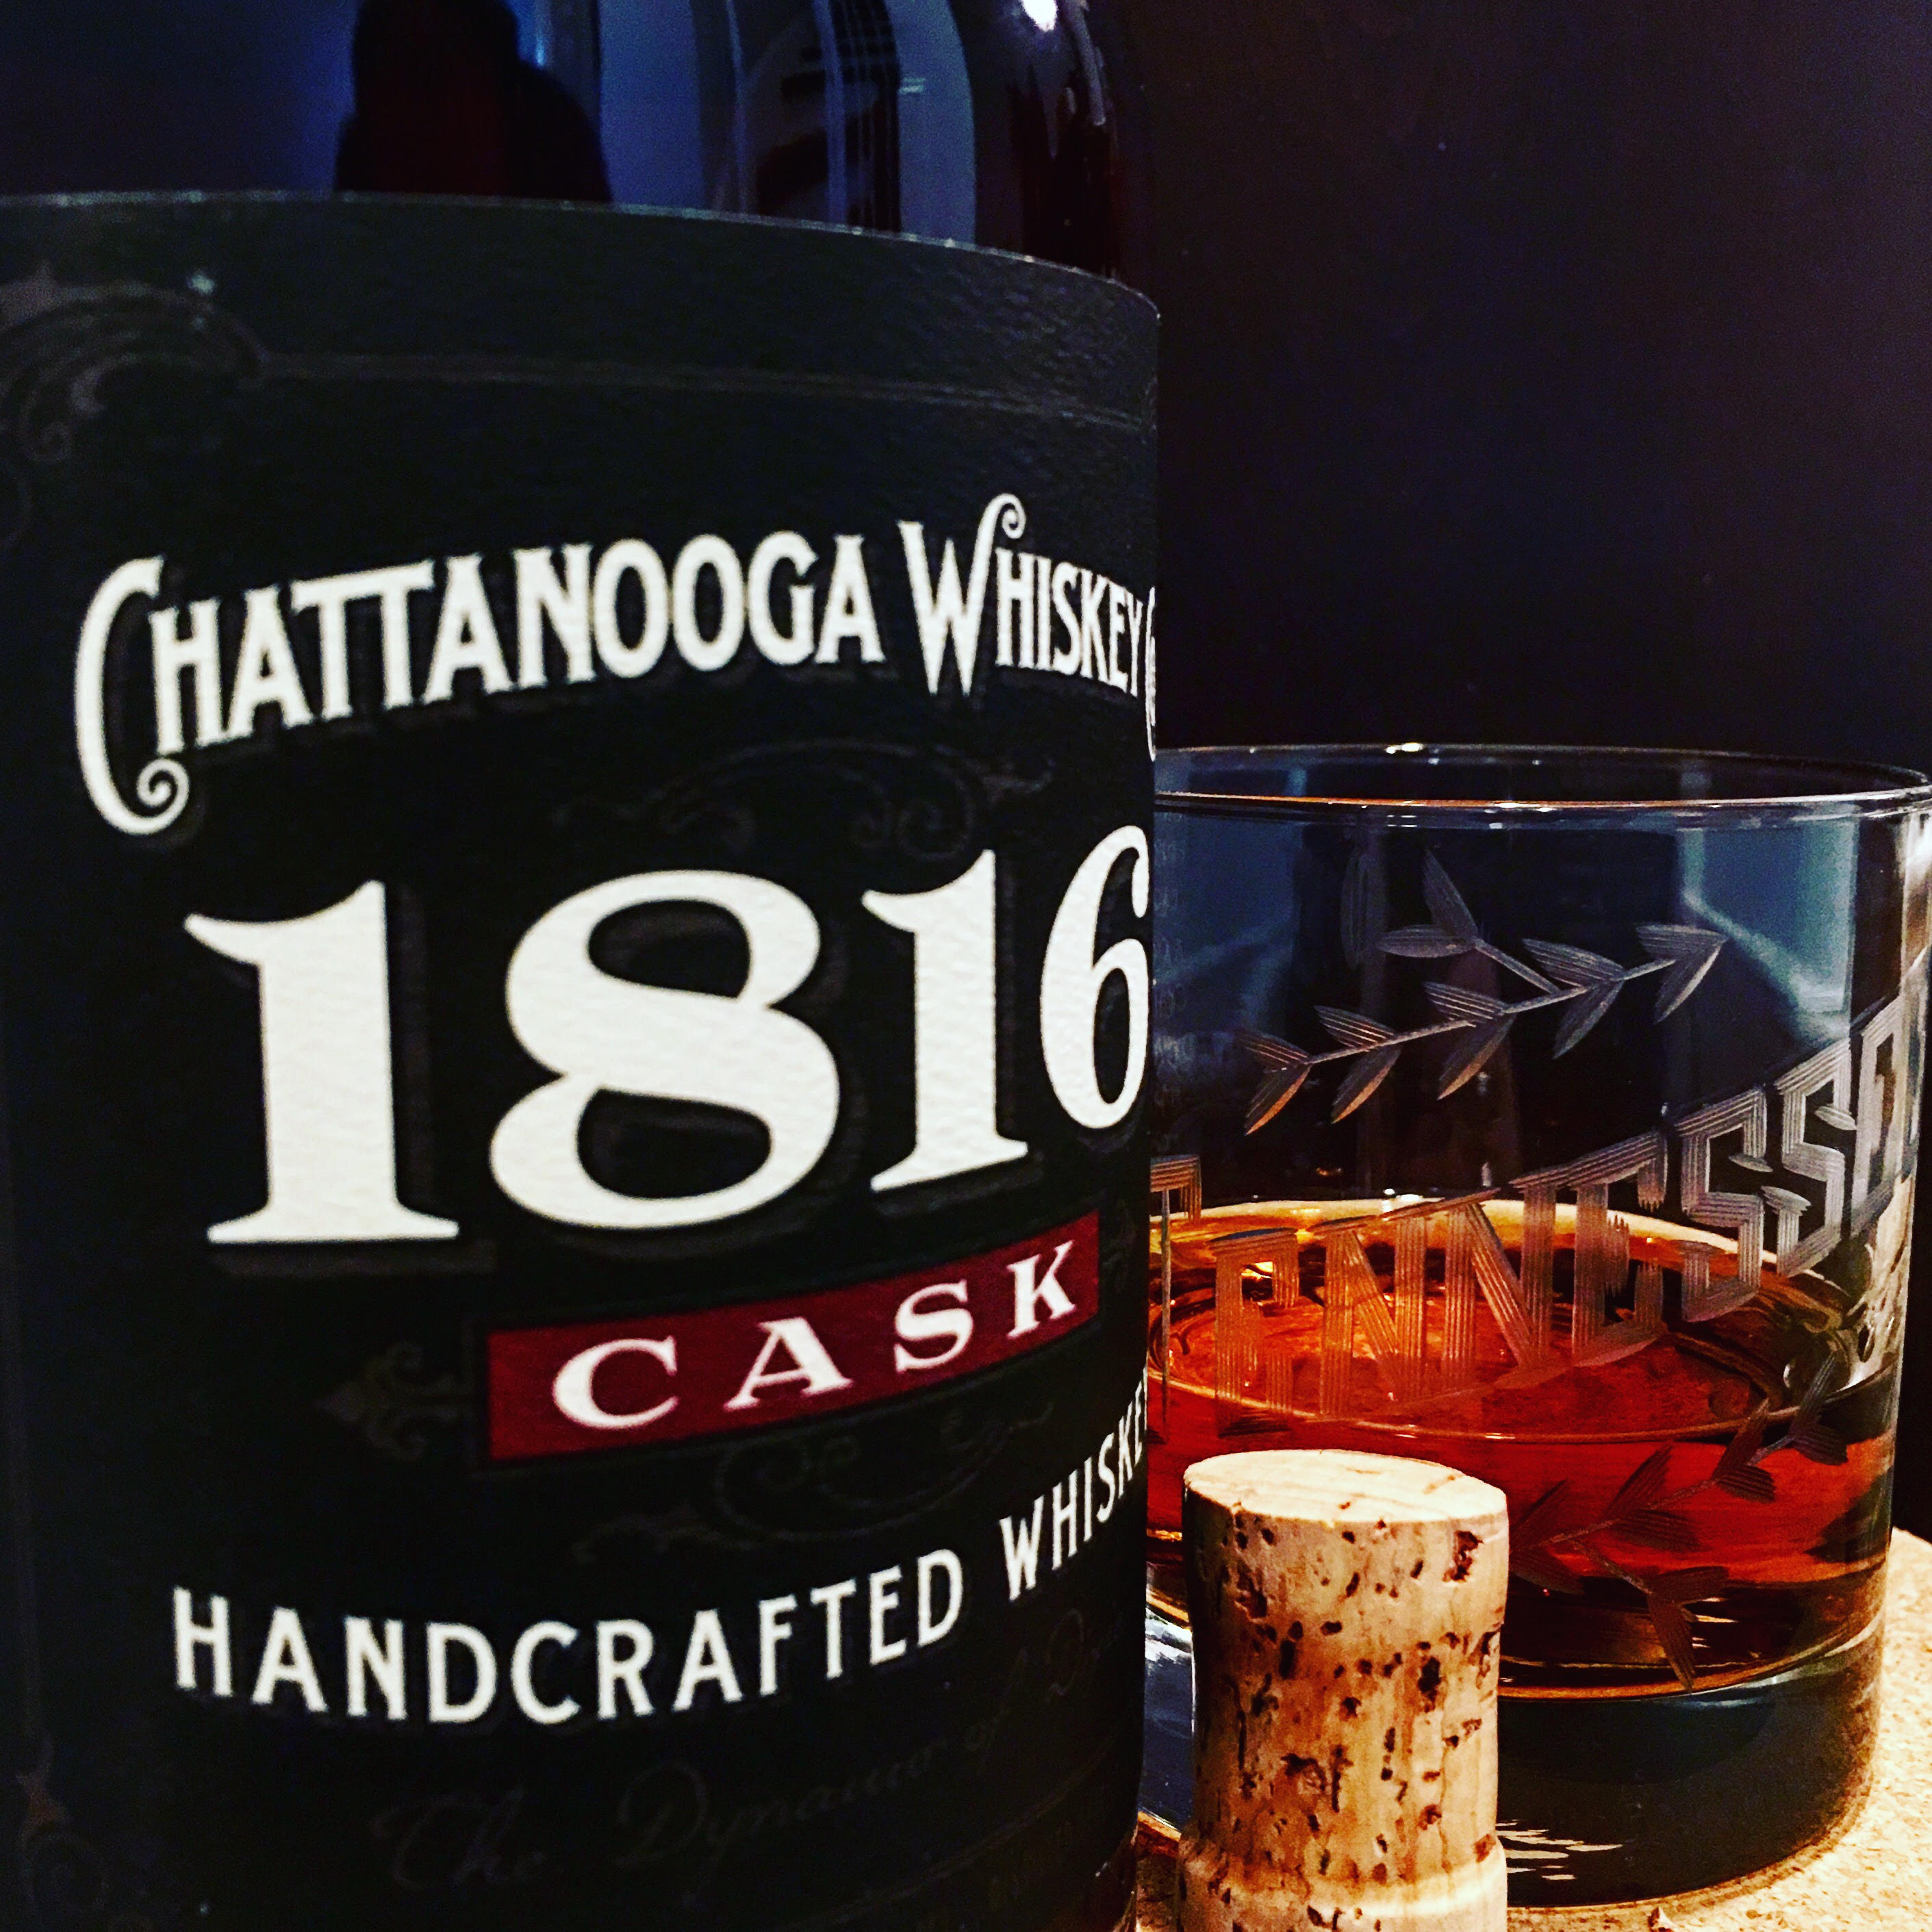 Chattanooga Whiskey 1816 Cask